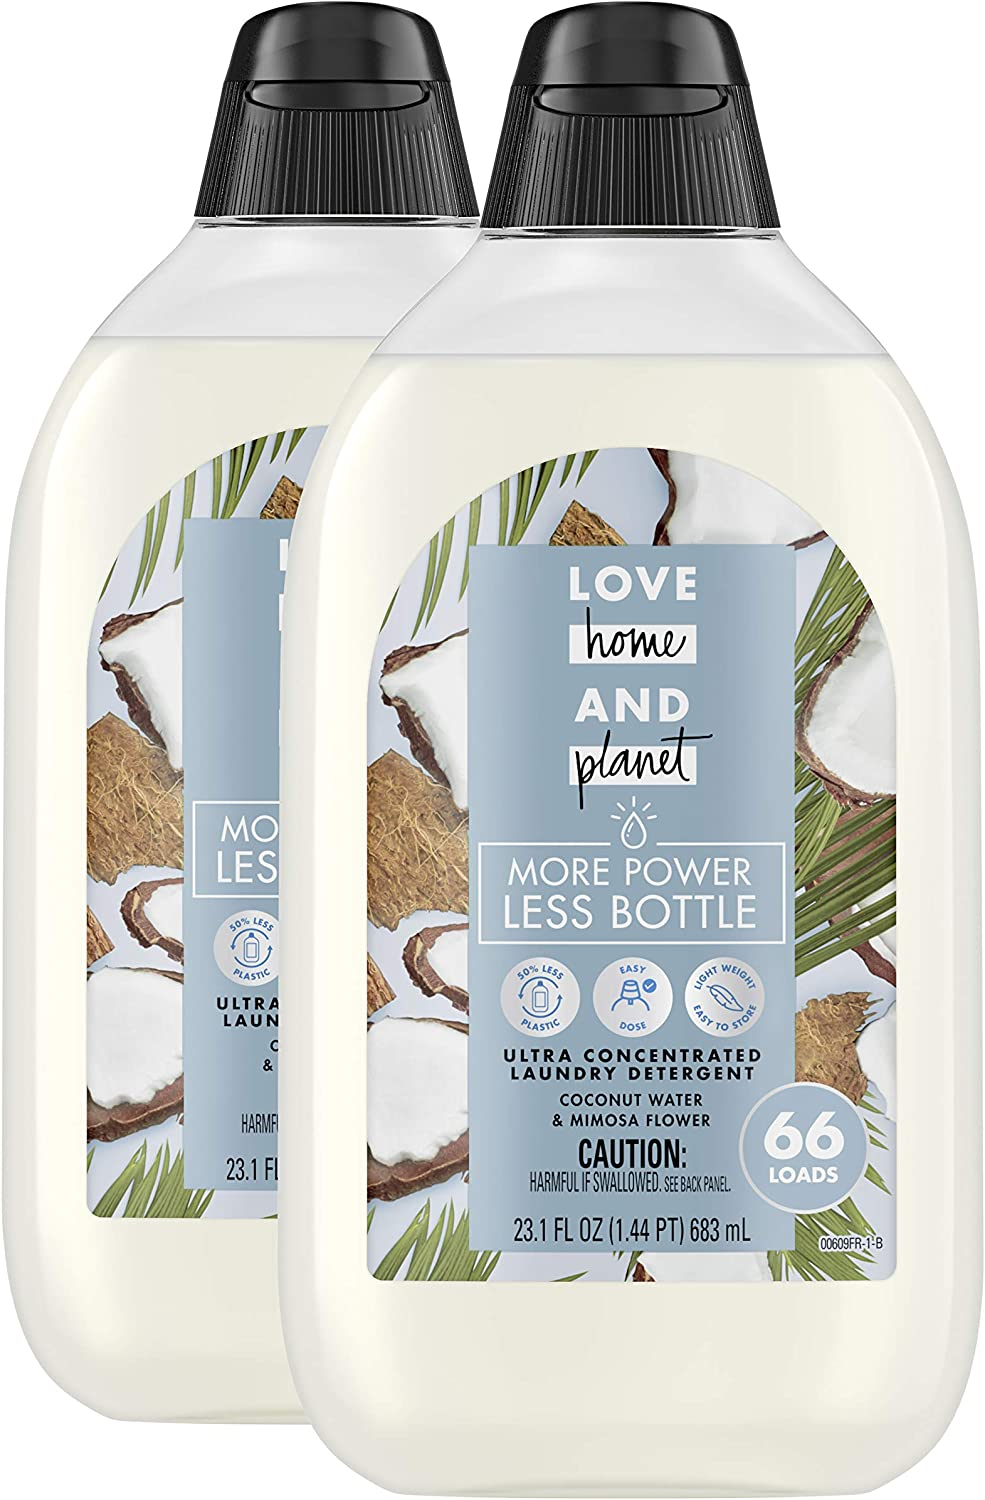 Love Home and Planet Ultra Concentrated Laundry Detergent, Coconut Water & Mimosa Flower (66 Loads Each), 23.1 Fl Oz, Pack of 2